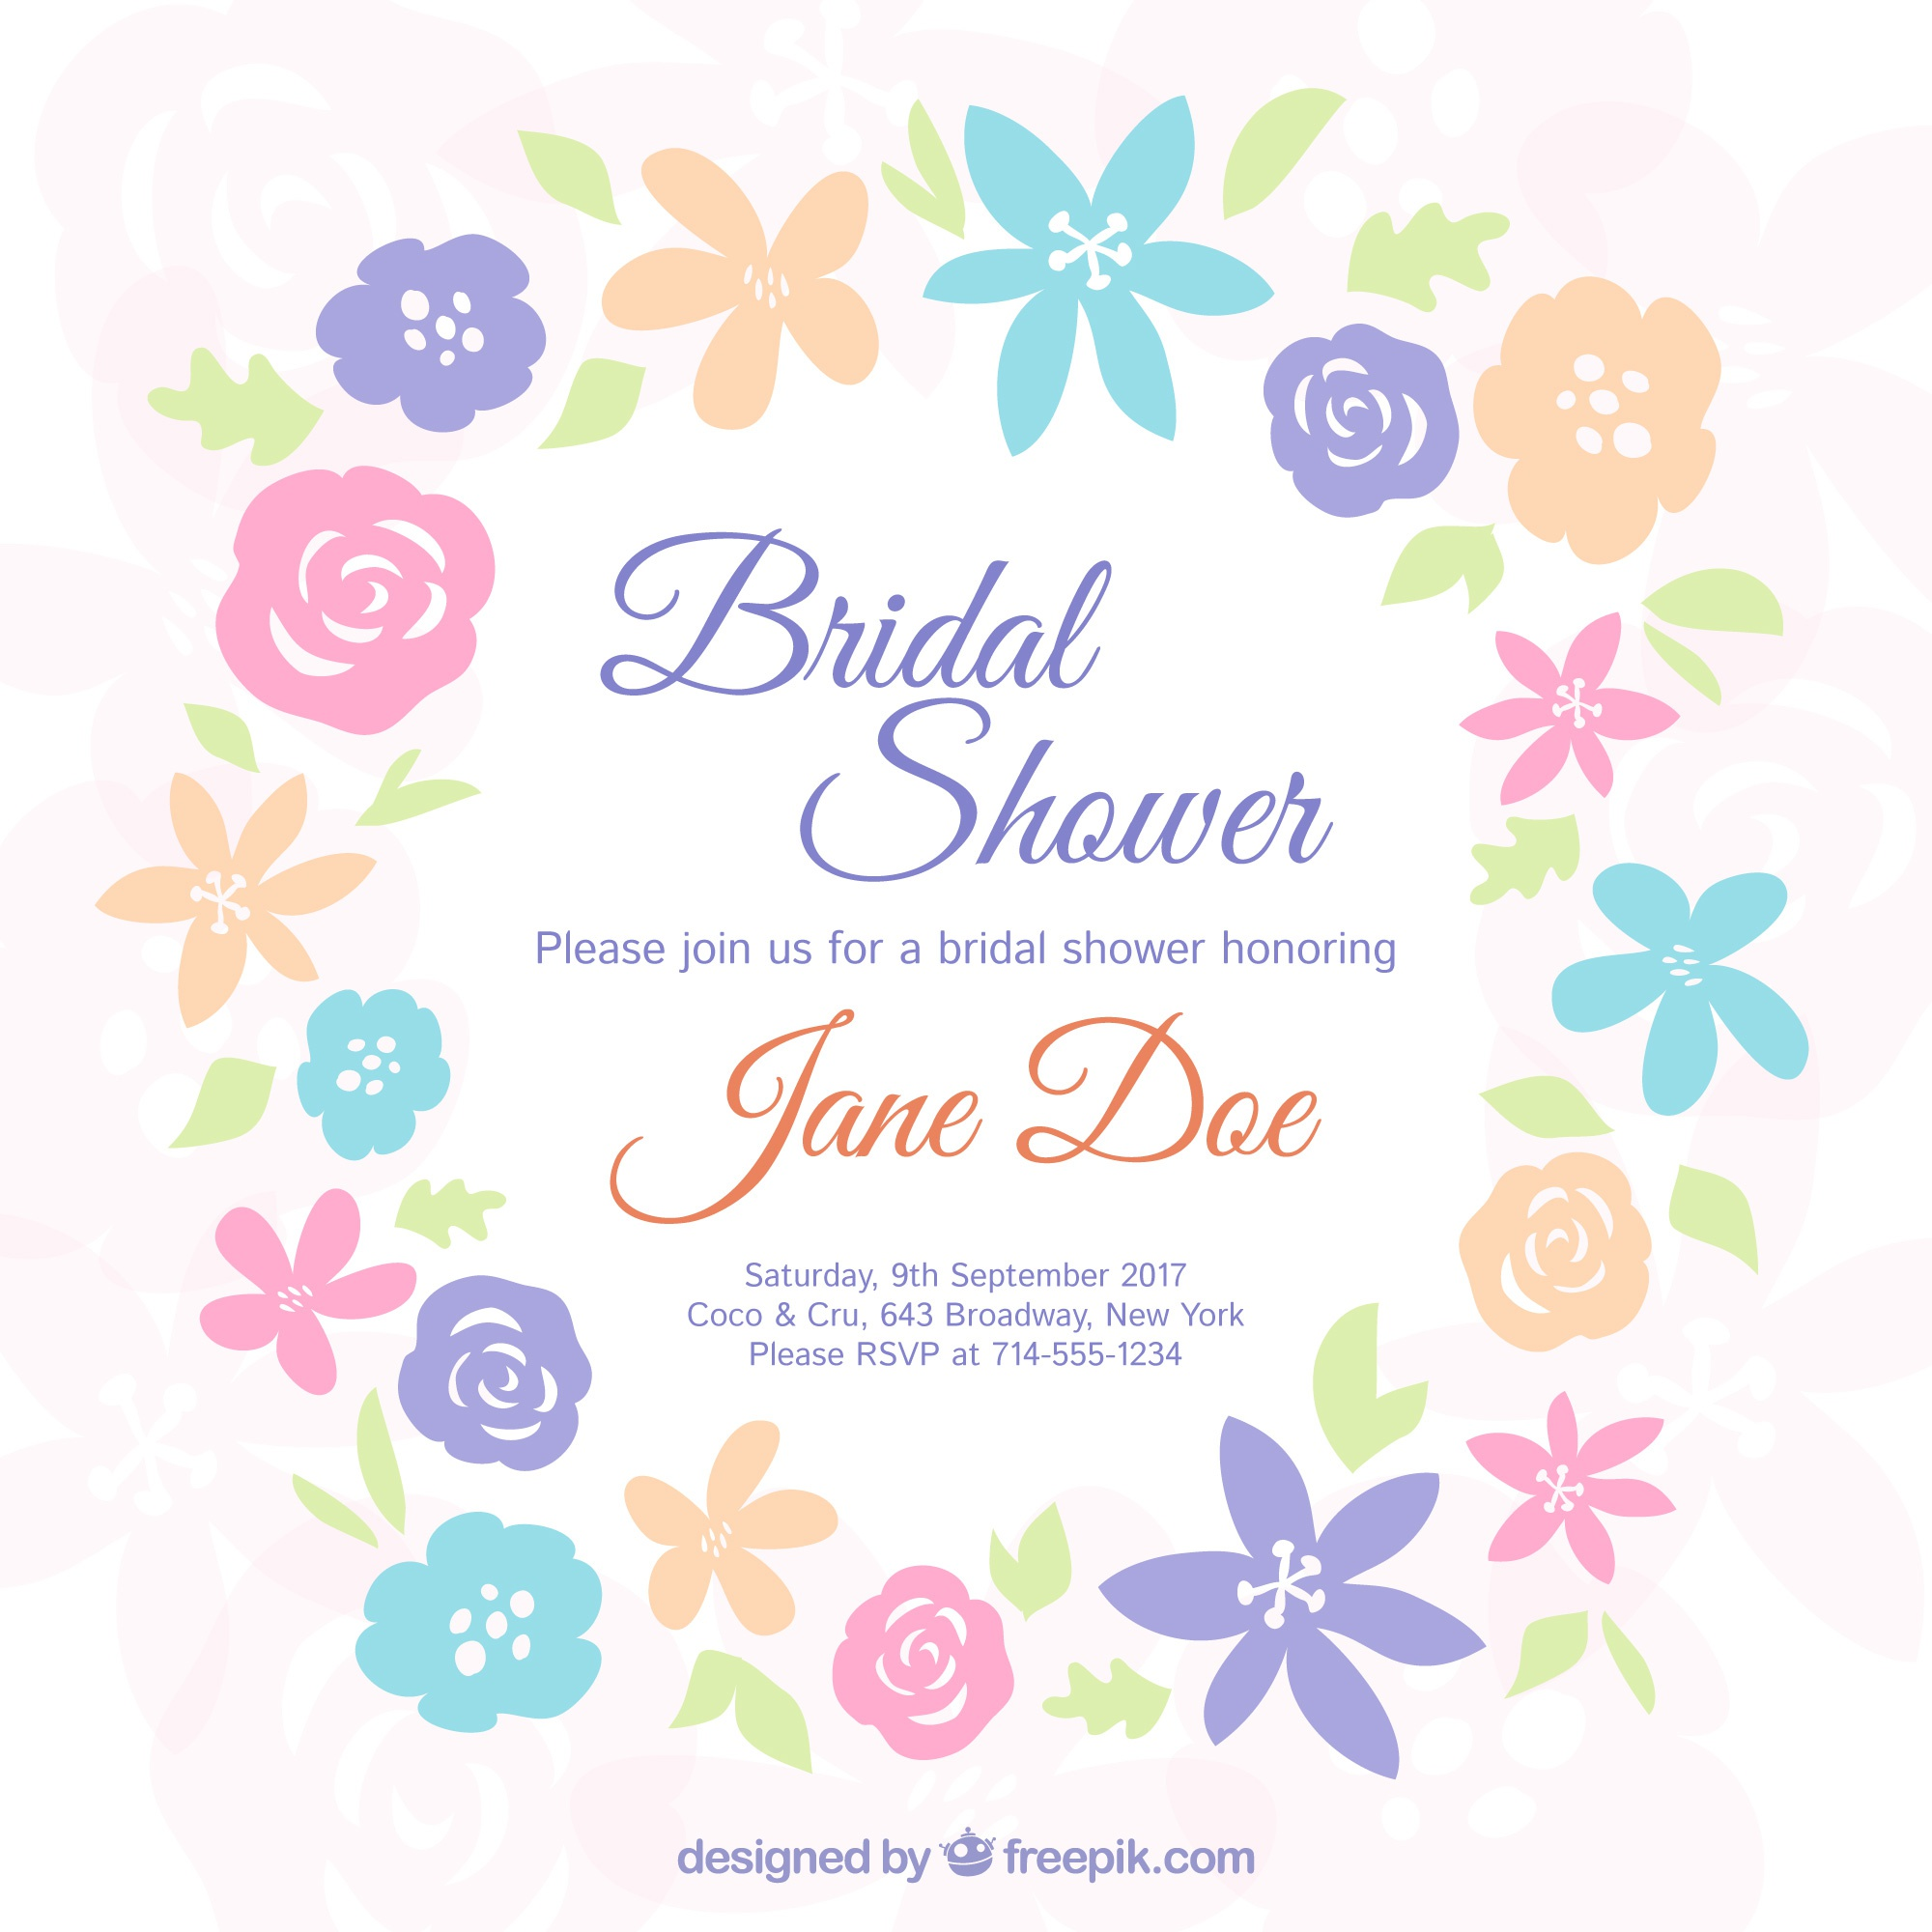 Bachelorette invitation with colored flowers